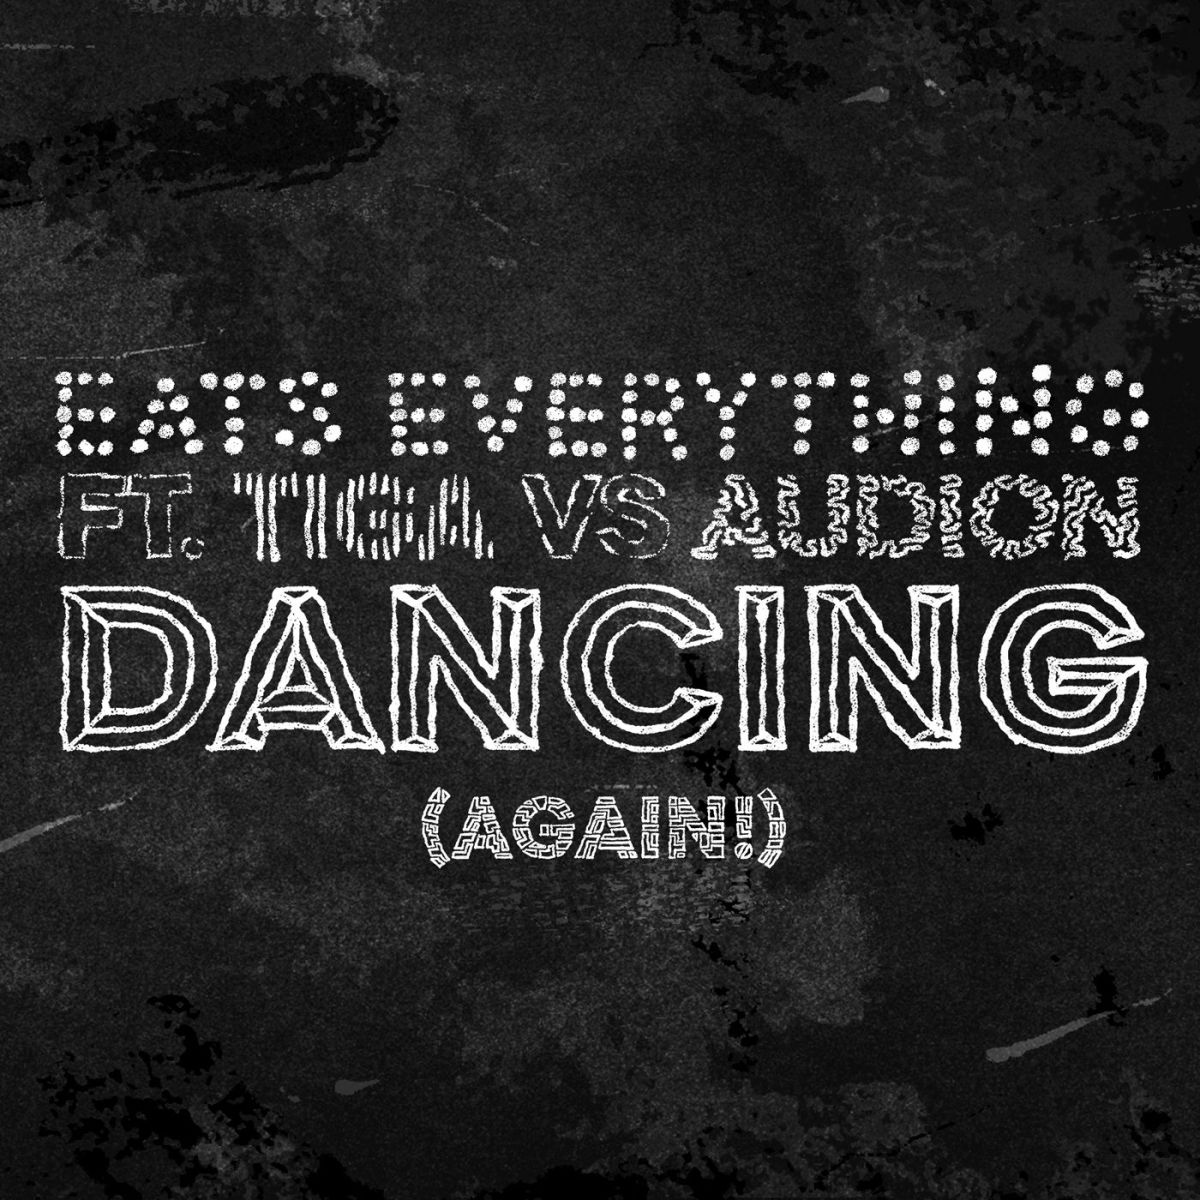 eats everything dancing again